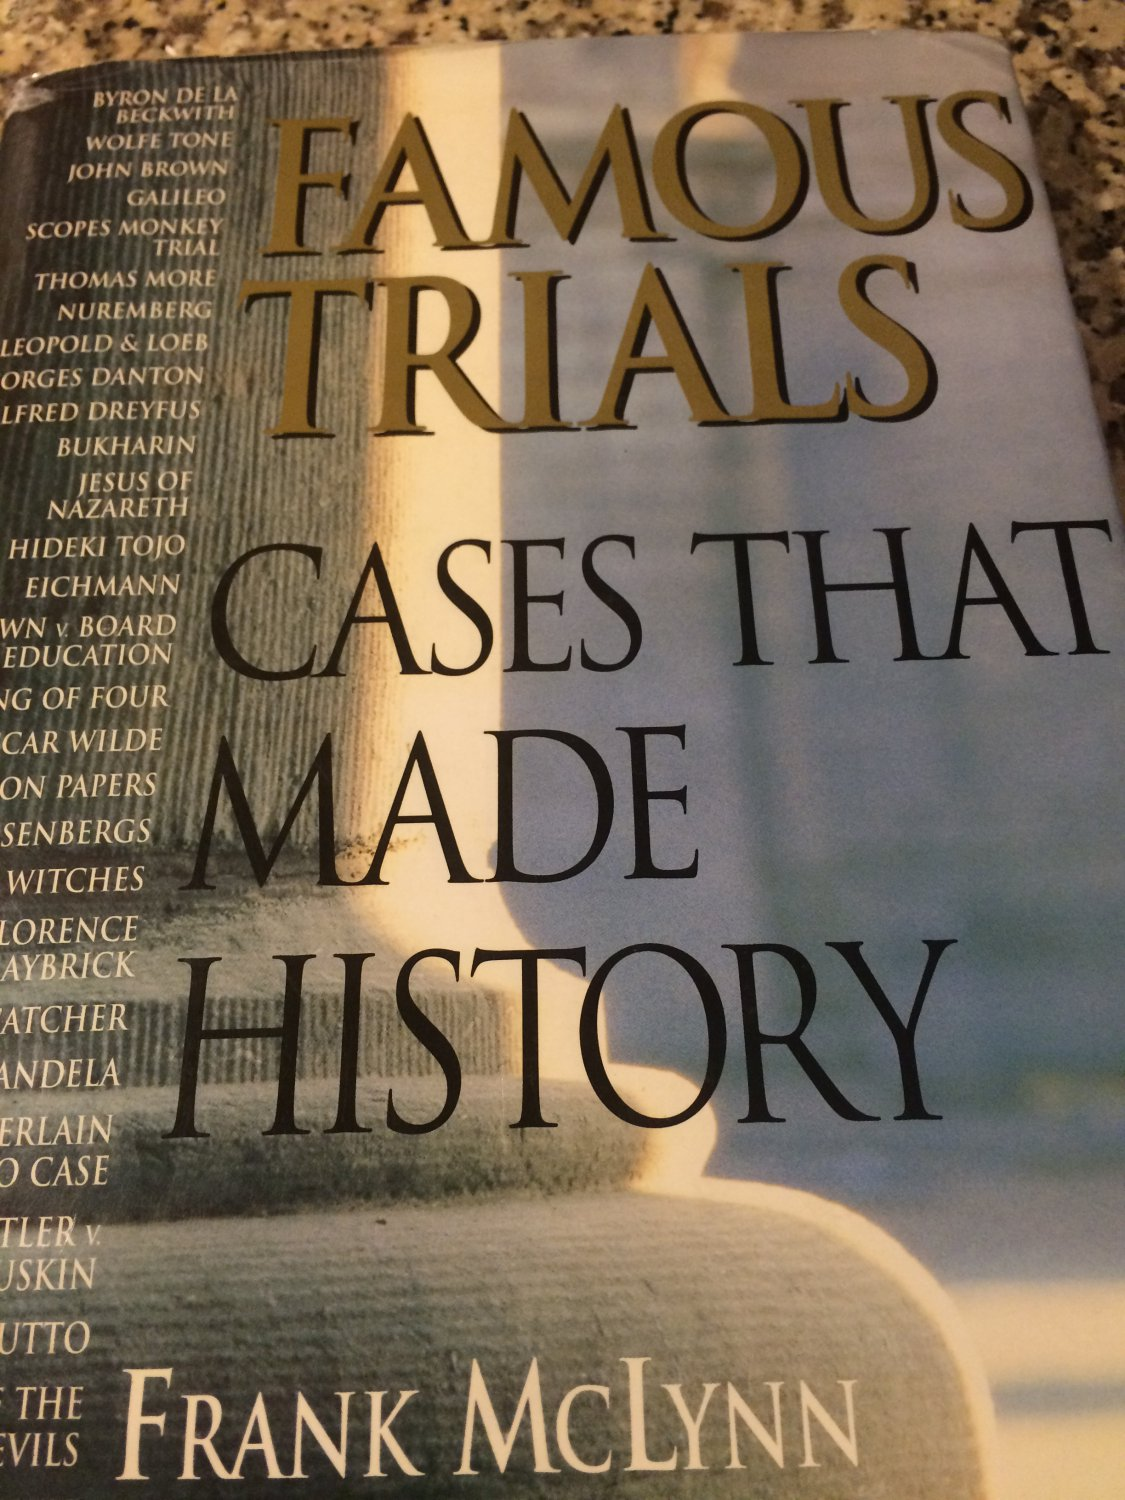 Famous Trials : Cases That Made History by Frank McLynn (1995, Hardcover)